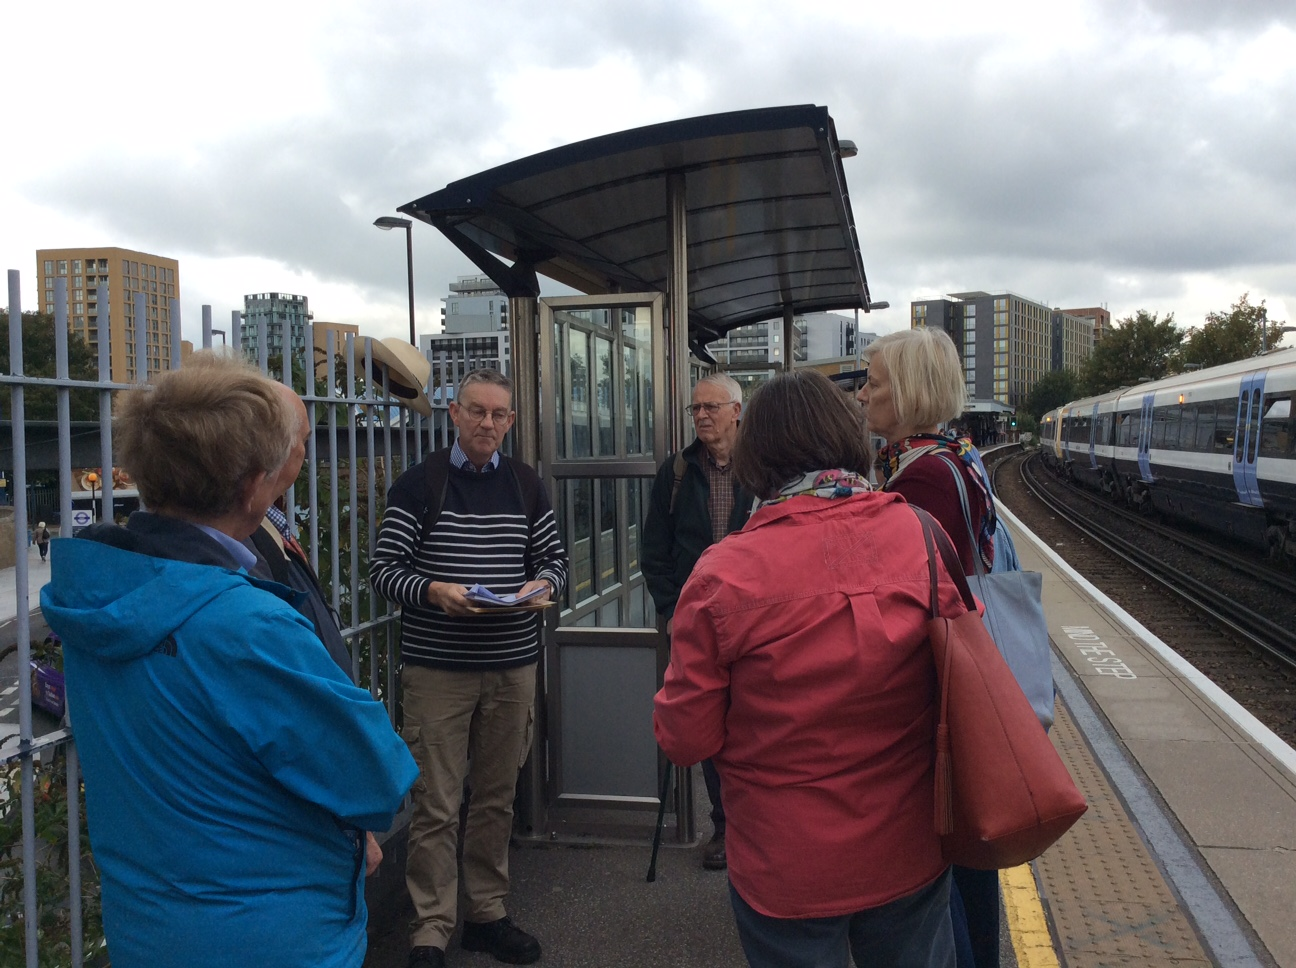 John revealing the history of Lewisham station, Lewisham and … Cynthia Paine the connection was most surprising!